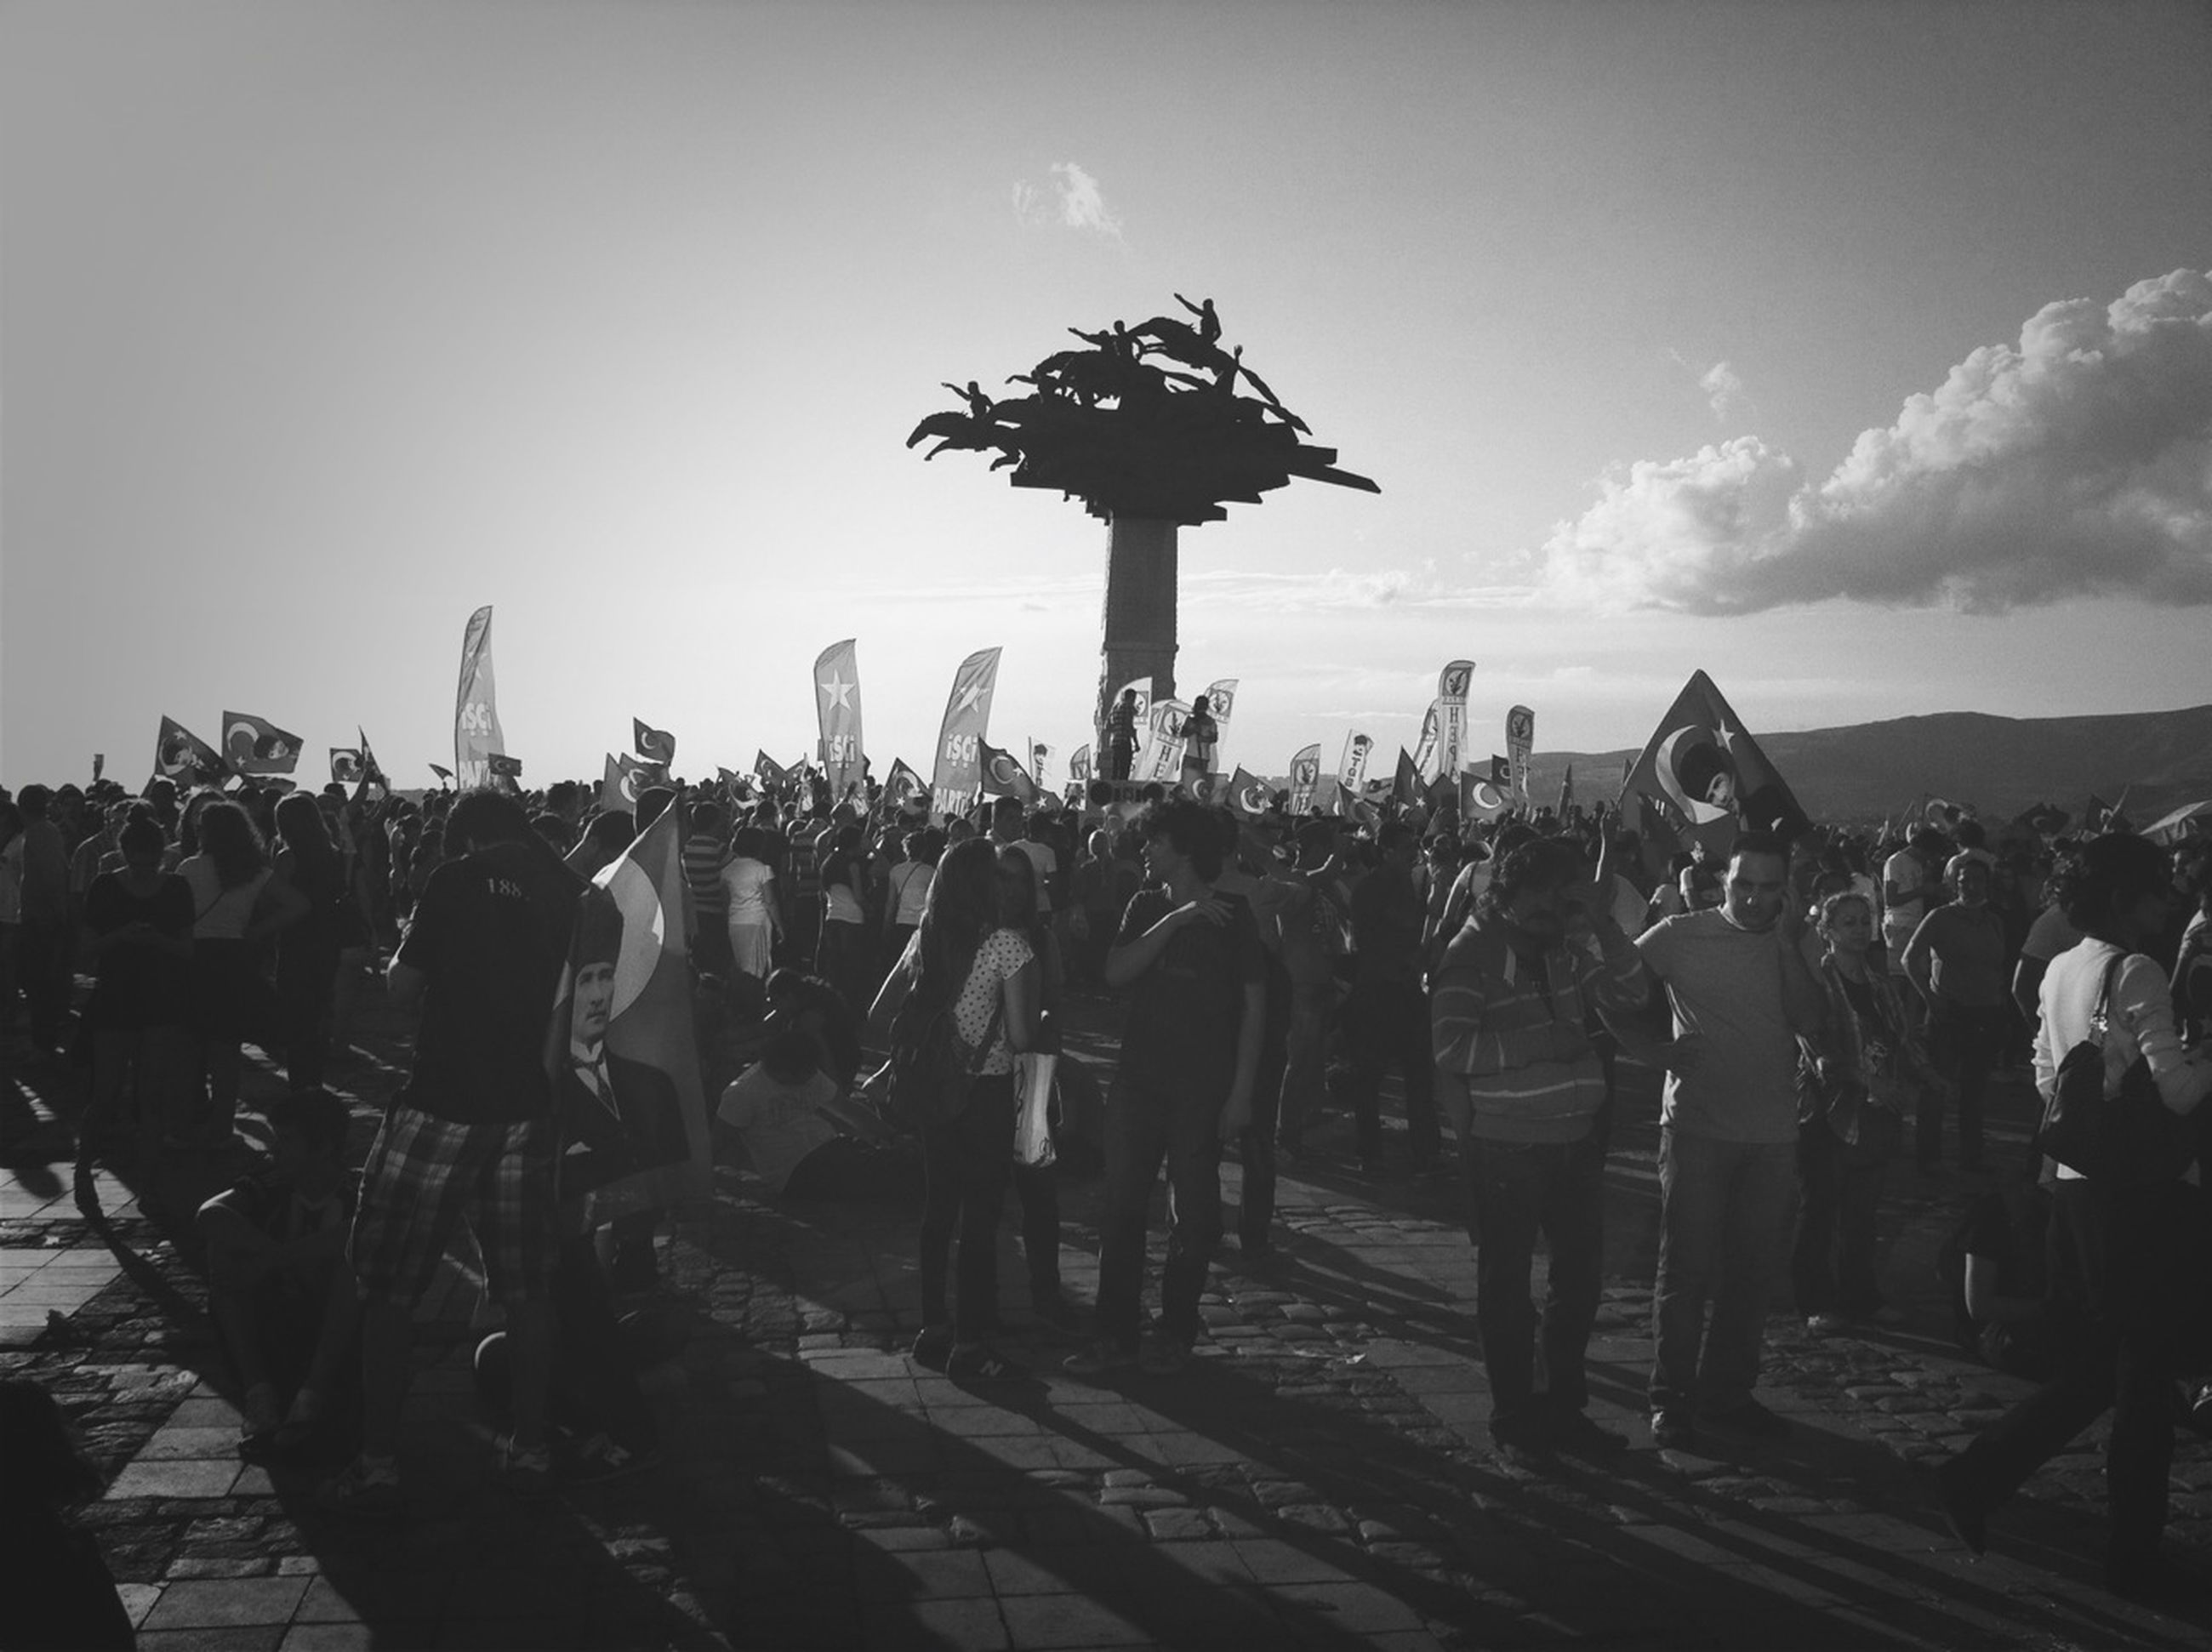 large group of people, sky, men, person, lifestyles, leisure activity, crowd, mixed age range, silhouette, standing, tourism, outdoors, travel destinations, travel, crowded, togetherness, tourist, landscape, cloud - sky